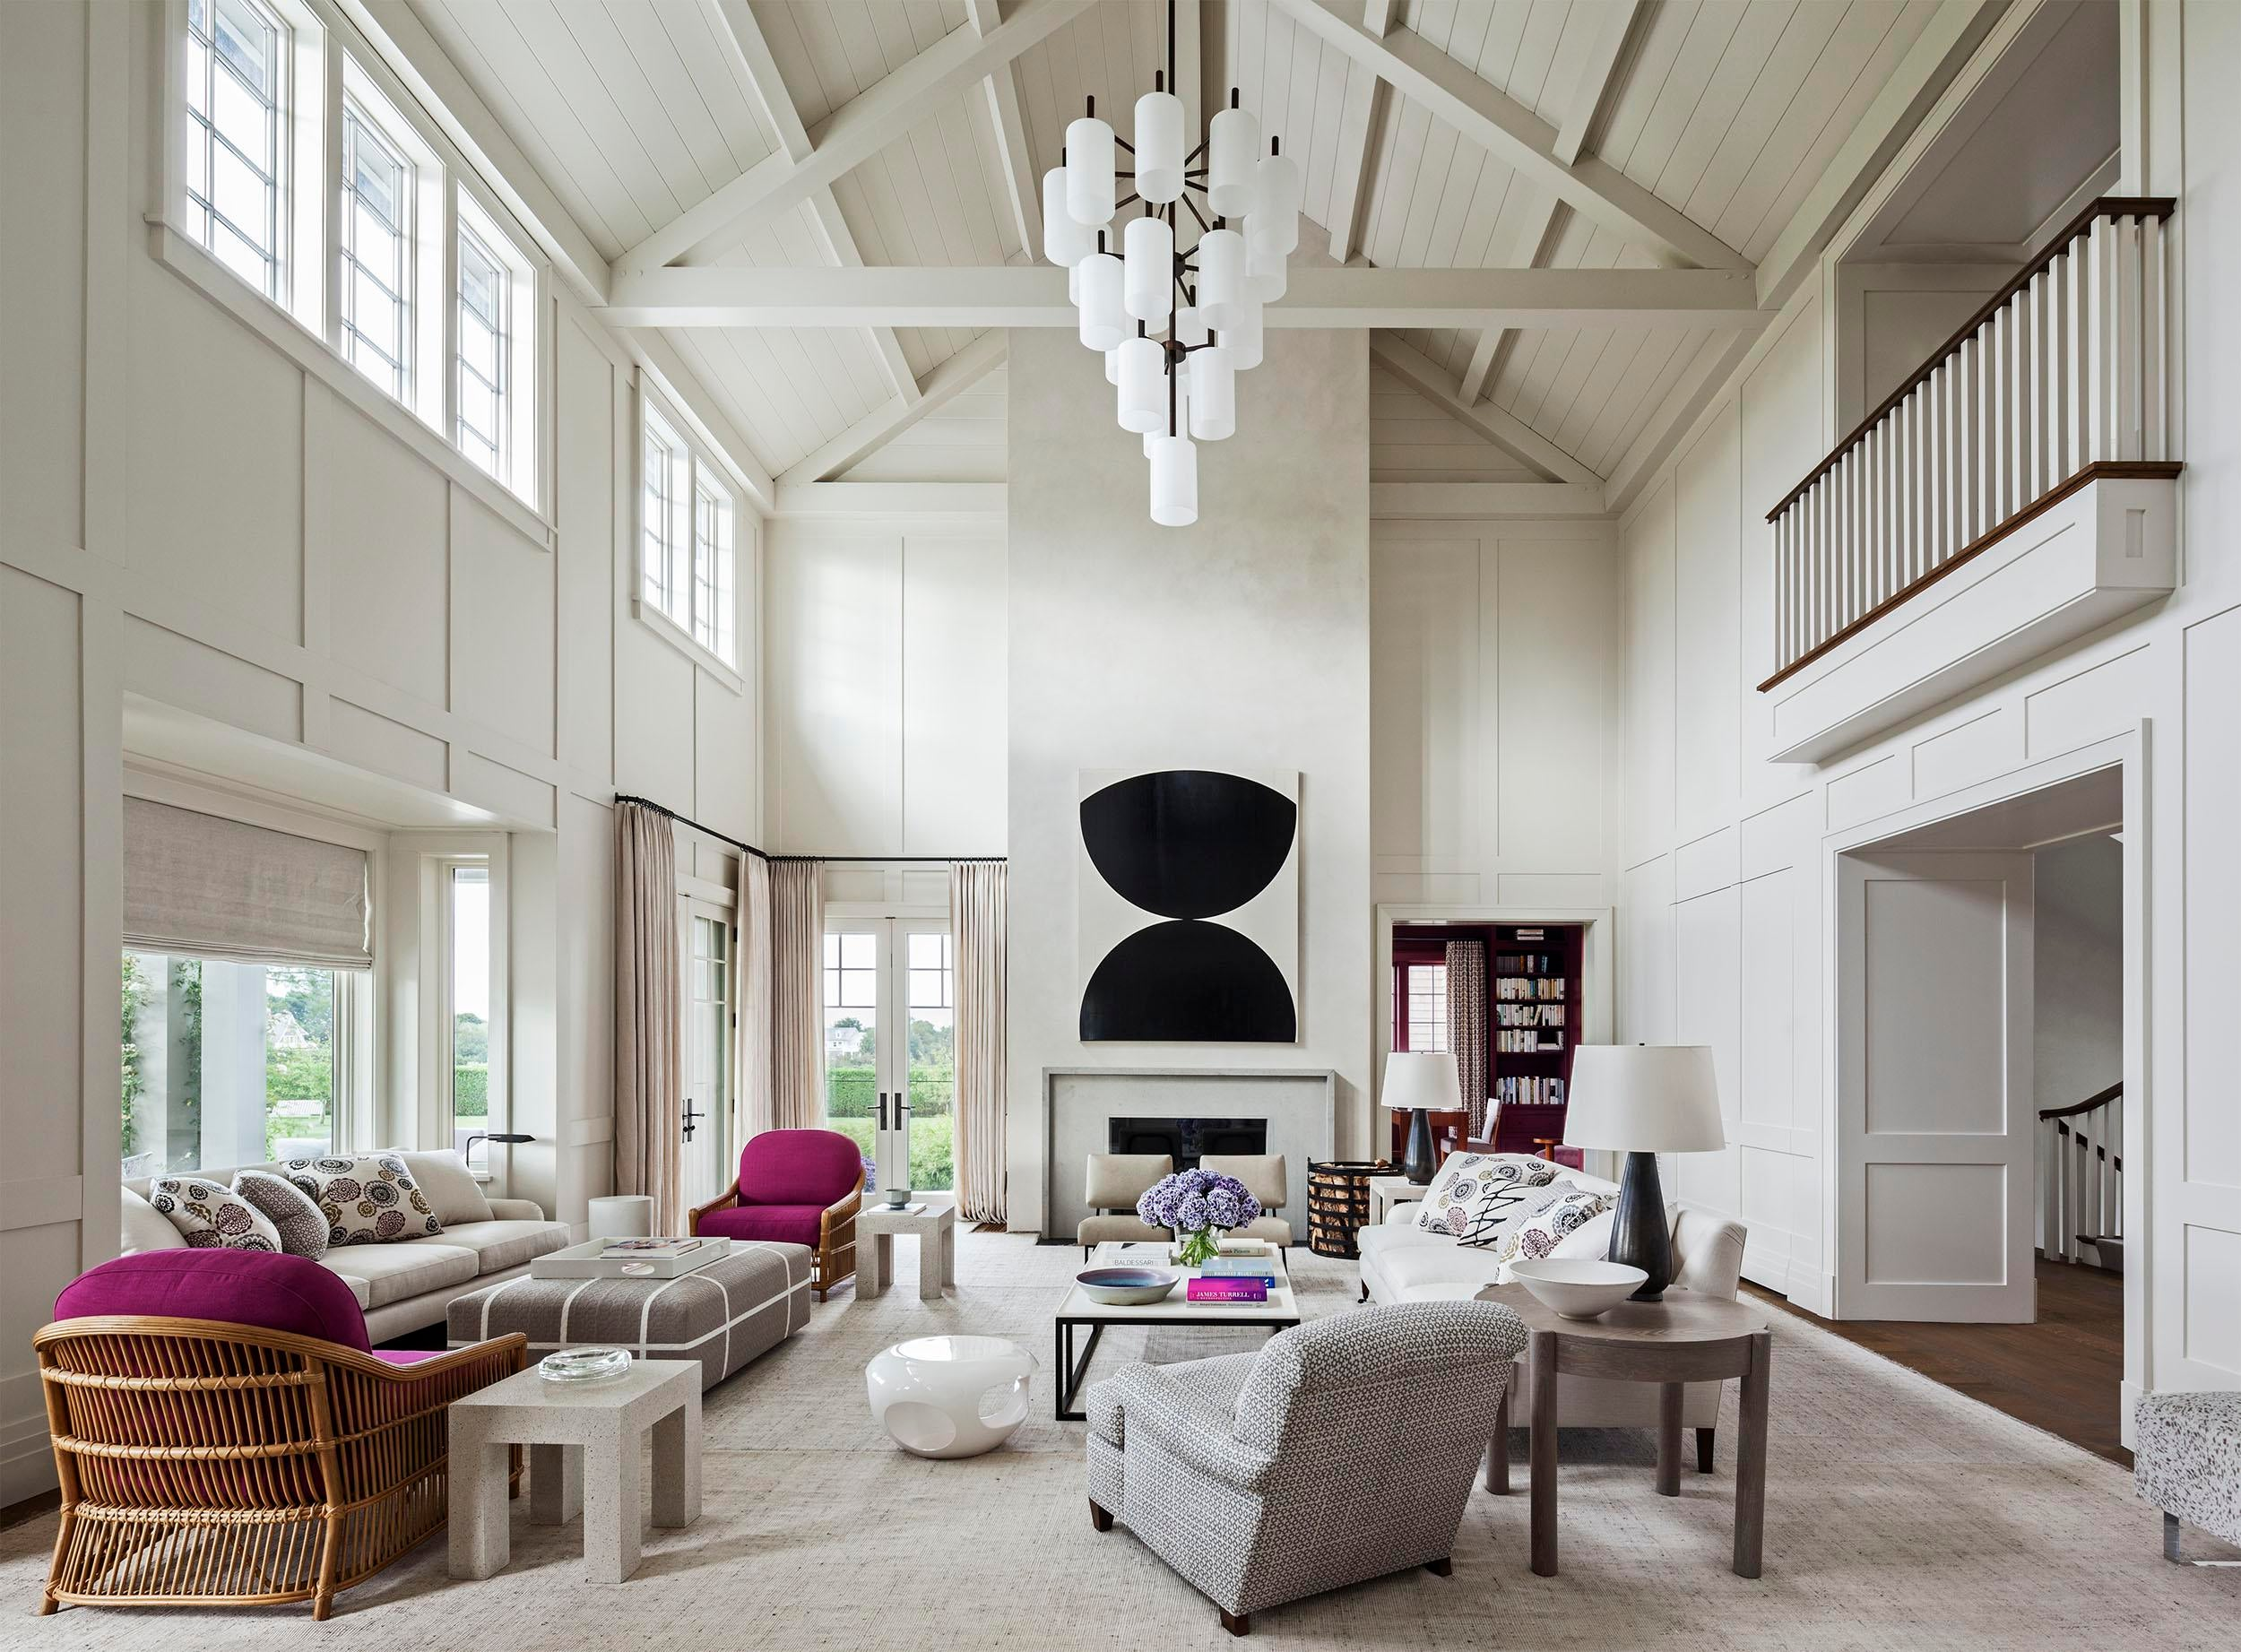 24 Chic Spaces With Cathedral Ceilings